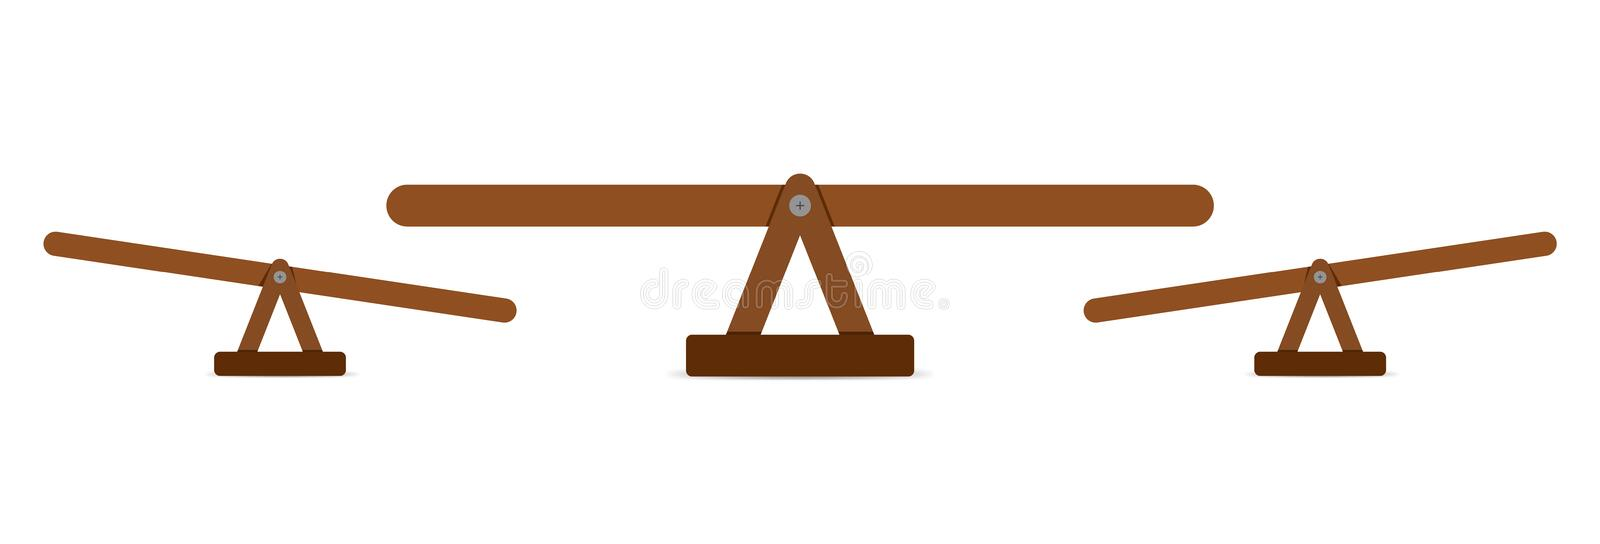 Seesaw or wooden balance scale. Teeter equal board vector illustration